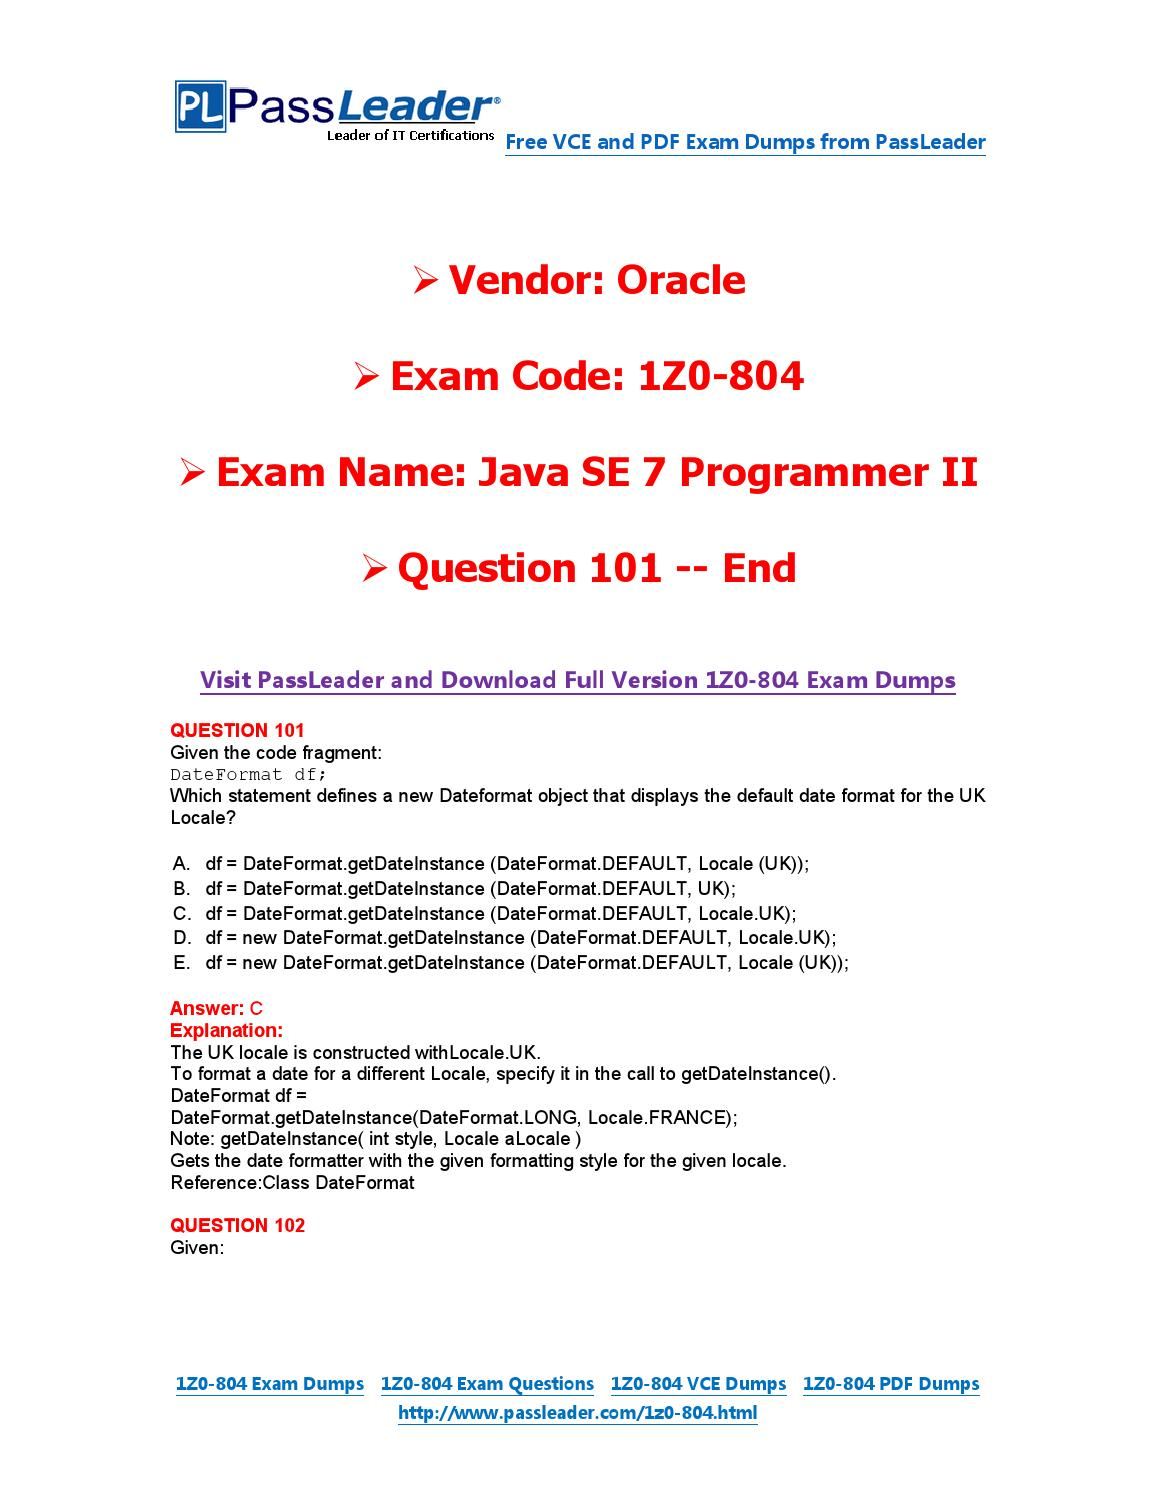 2016 New 1Z0-804 Exam Dumps For Free (VCE and PDF) (101-end) by Exam